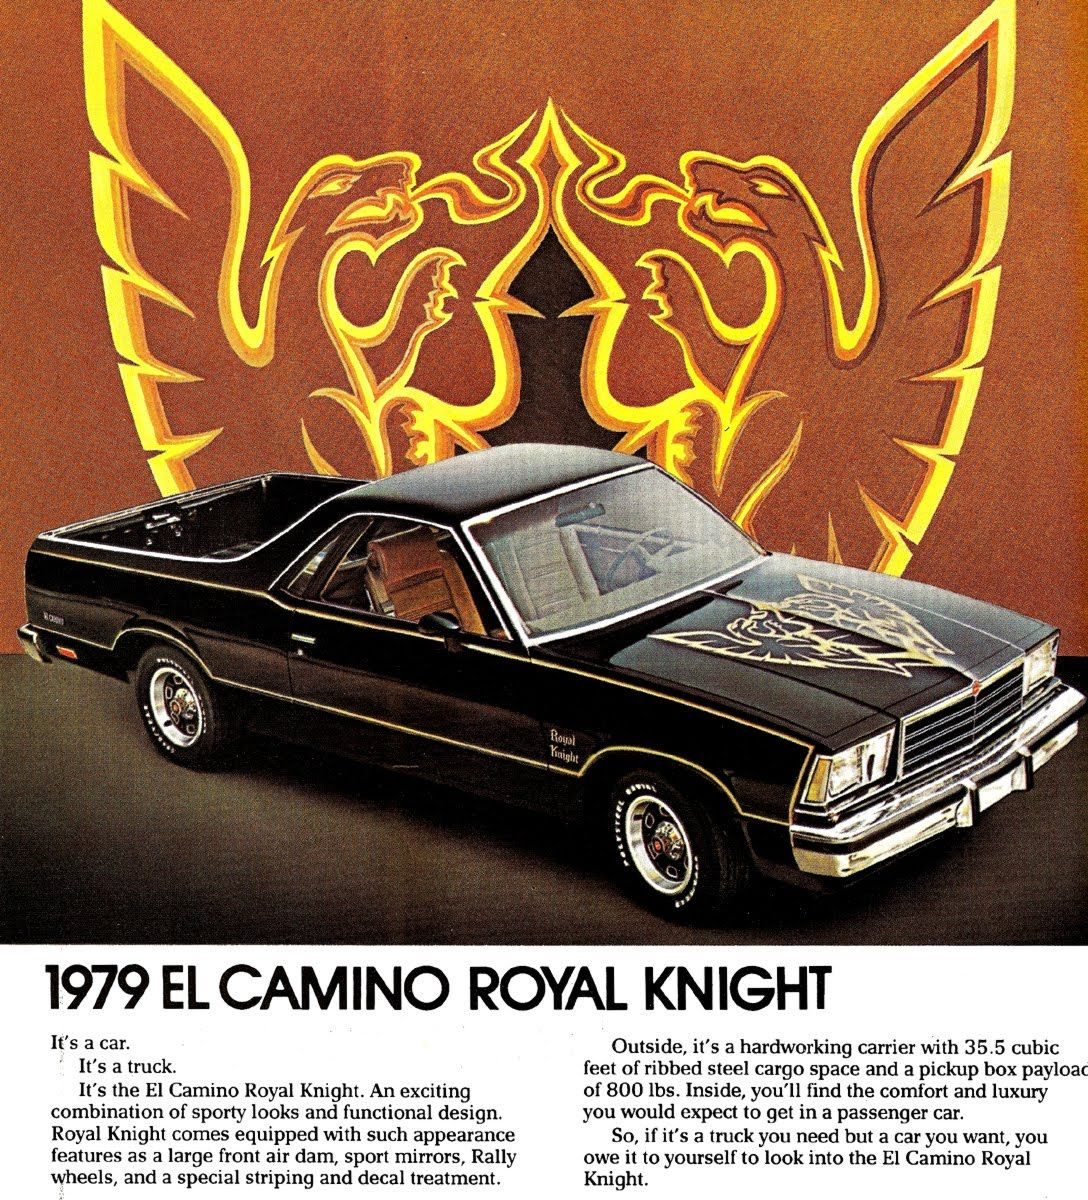 Home by year 1979 cars 1979 trucks car pictures - El Camino 1979 We Could Have Alot Of Wekend Fun In This Car Think We Could Fix Our El Camino To Look Like This